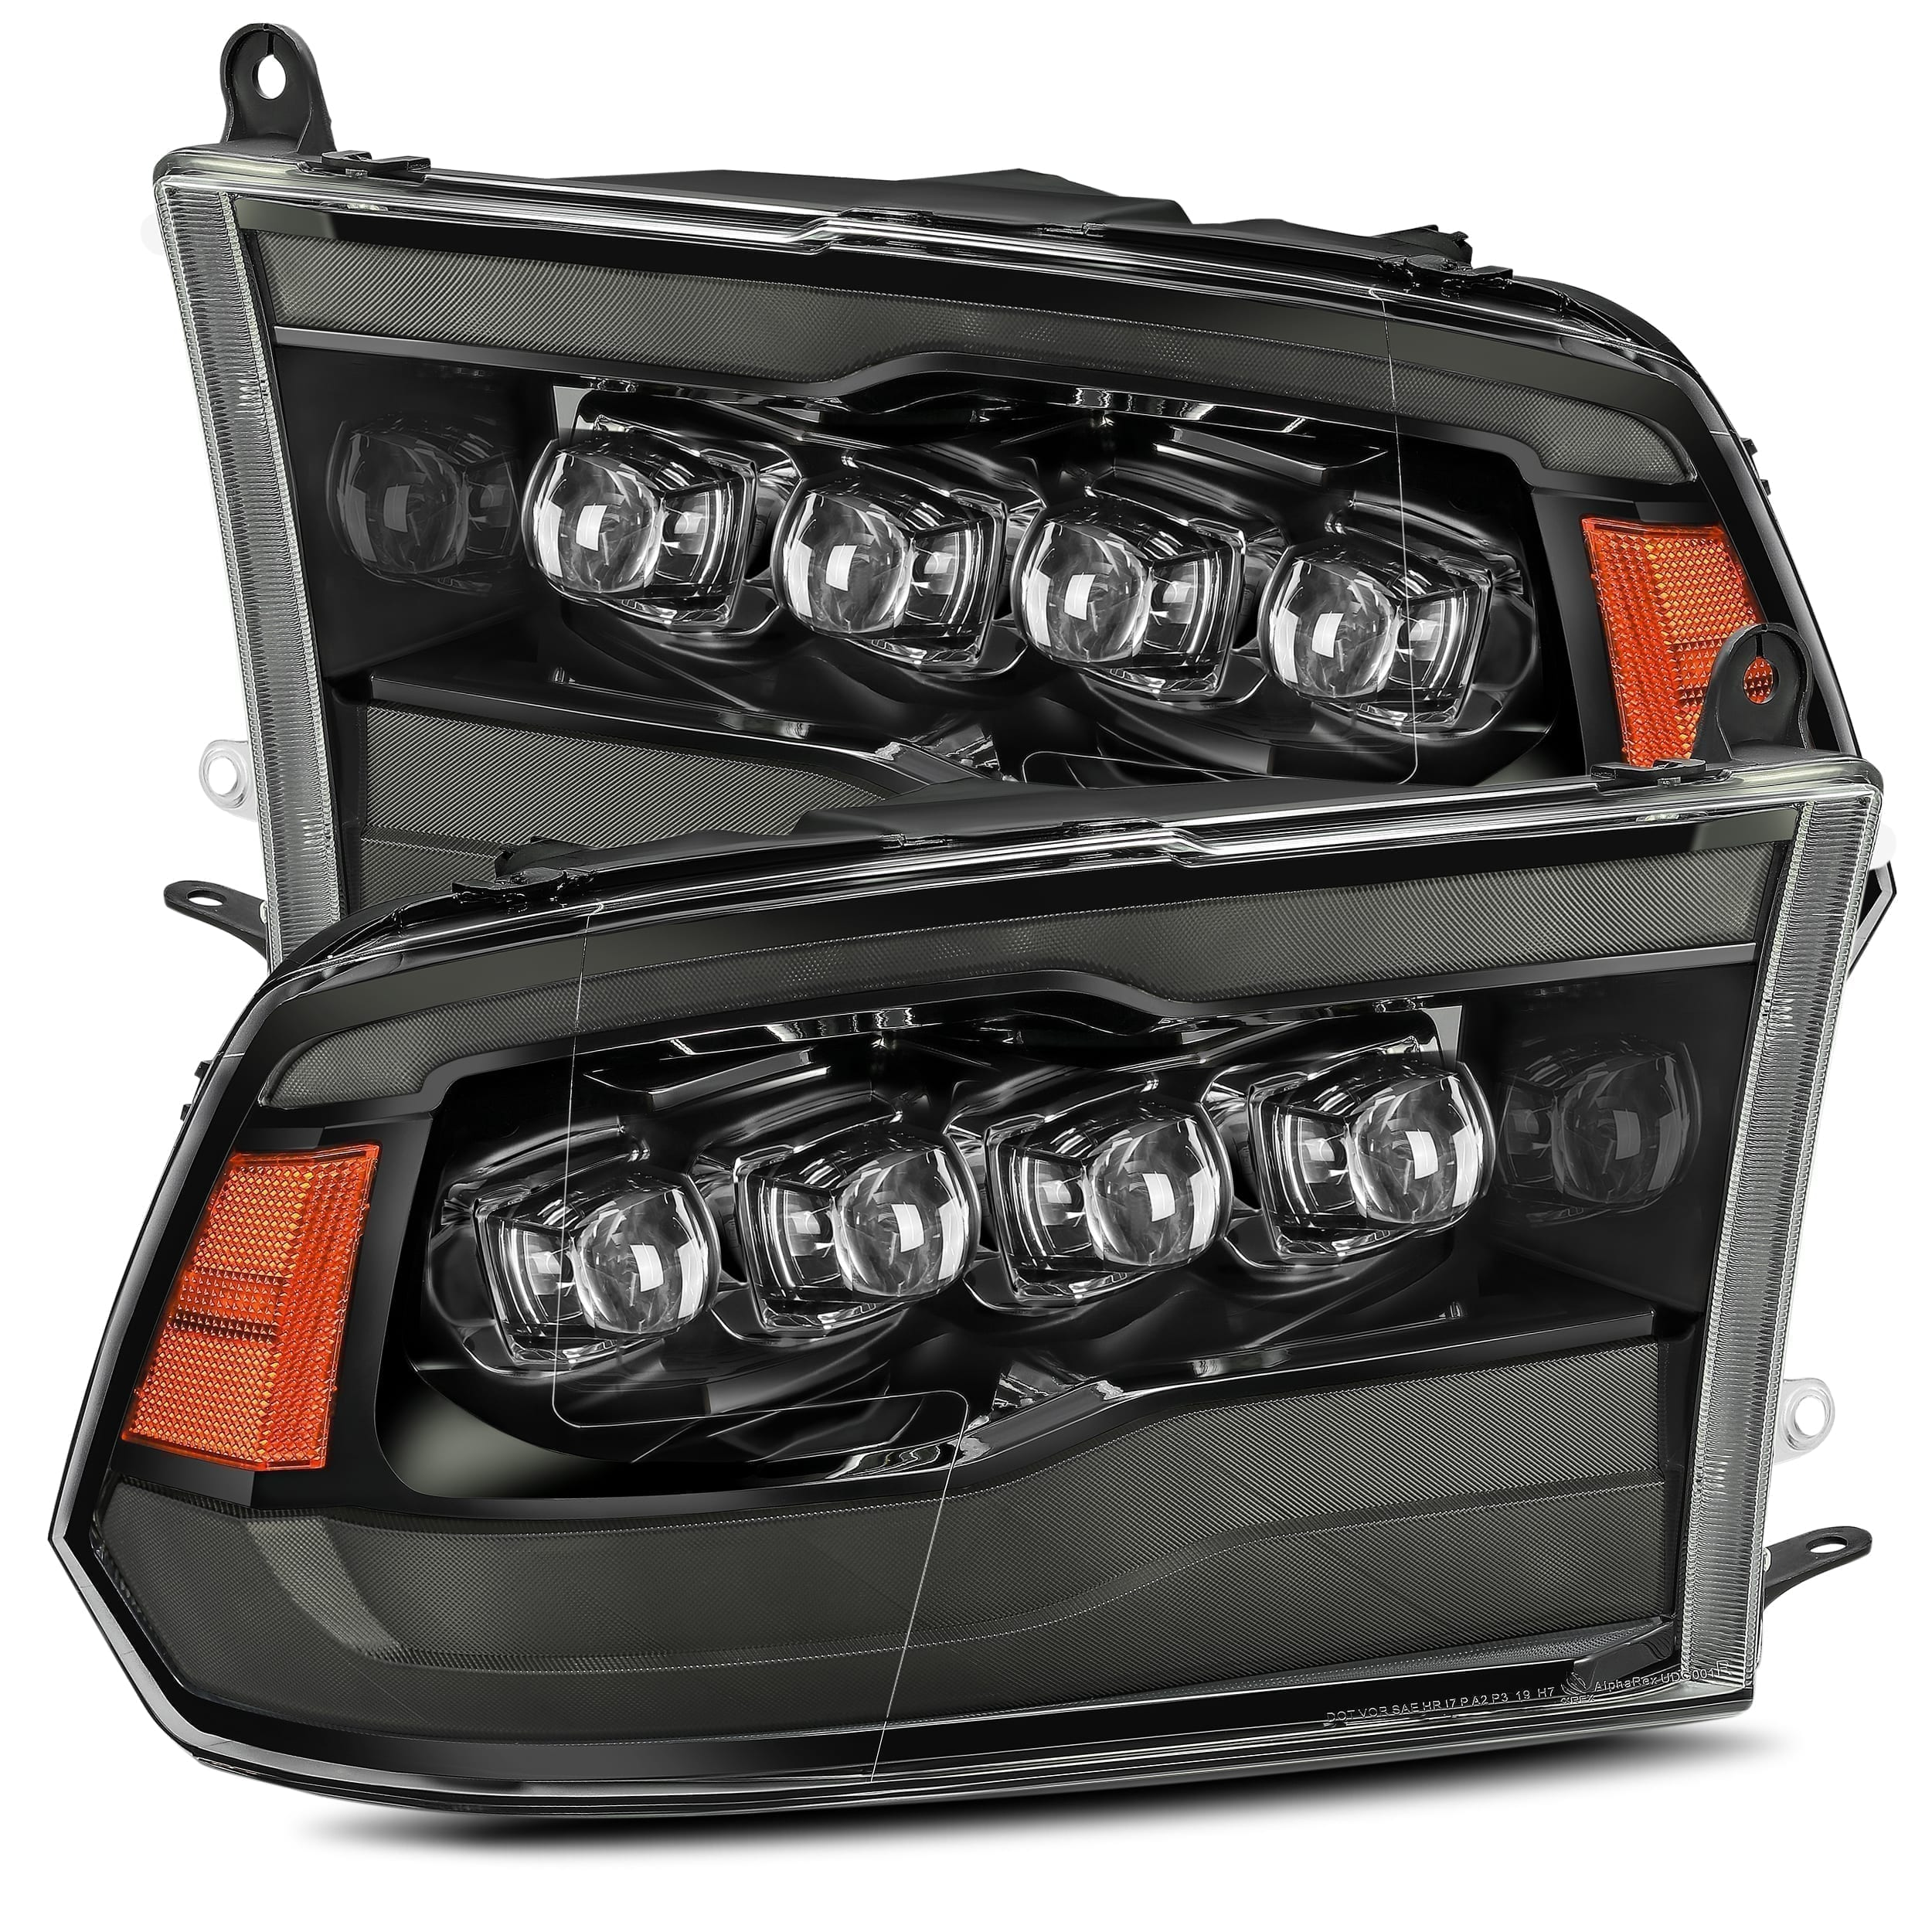 2009 2010 2011 2012 2013 2014 2015 2016 2017 2018 Dodge Ram 1500/2500/3500 NOVA-Series Full LED Projector Headlights Midnight Black